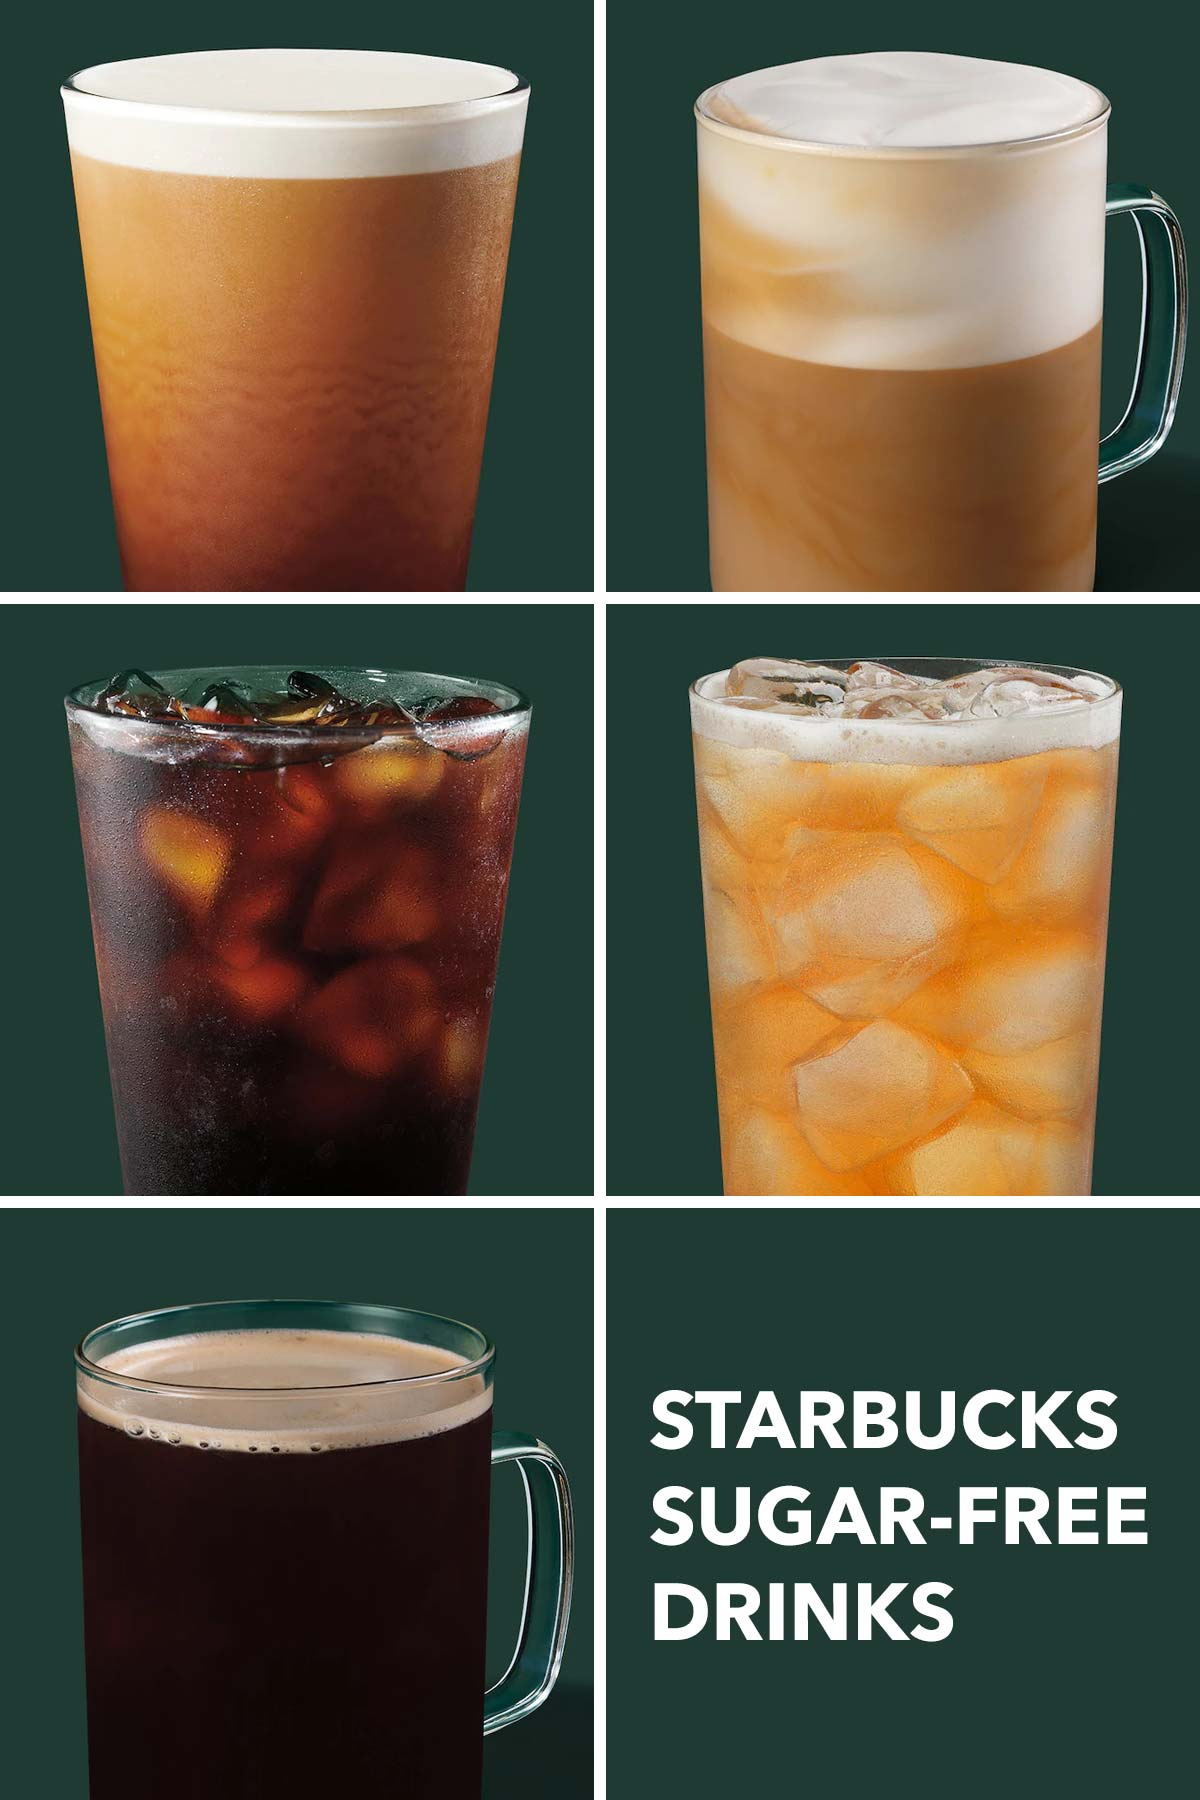 Six grid collage showing 5 different Starbucks sugar-free drinks.